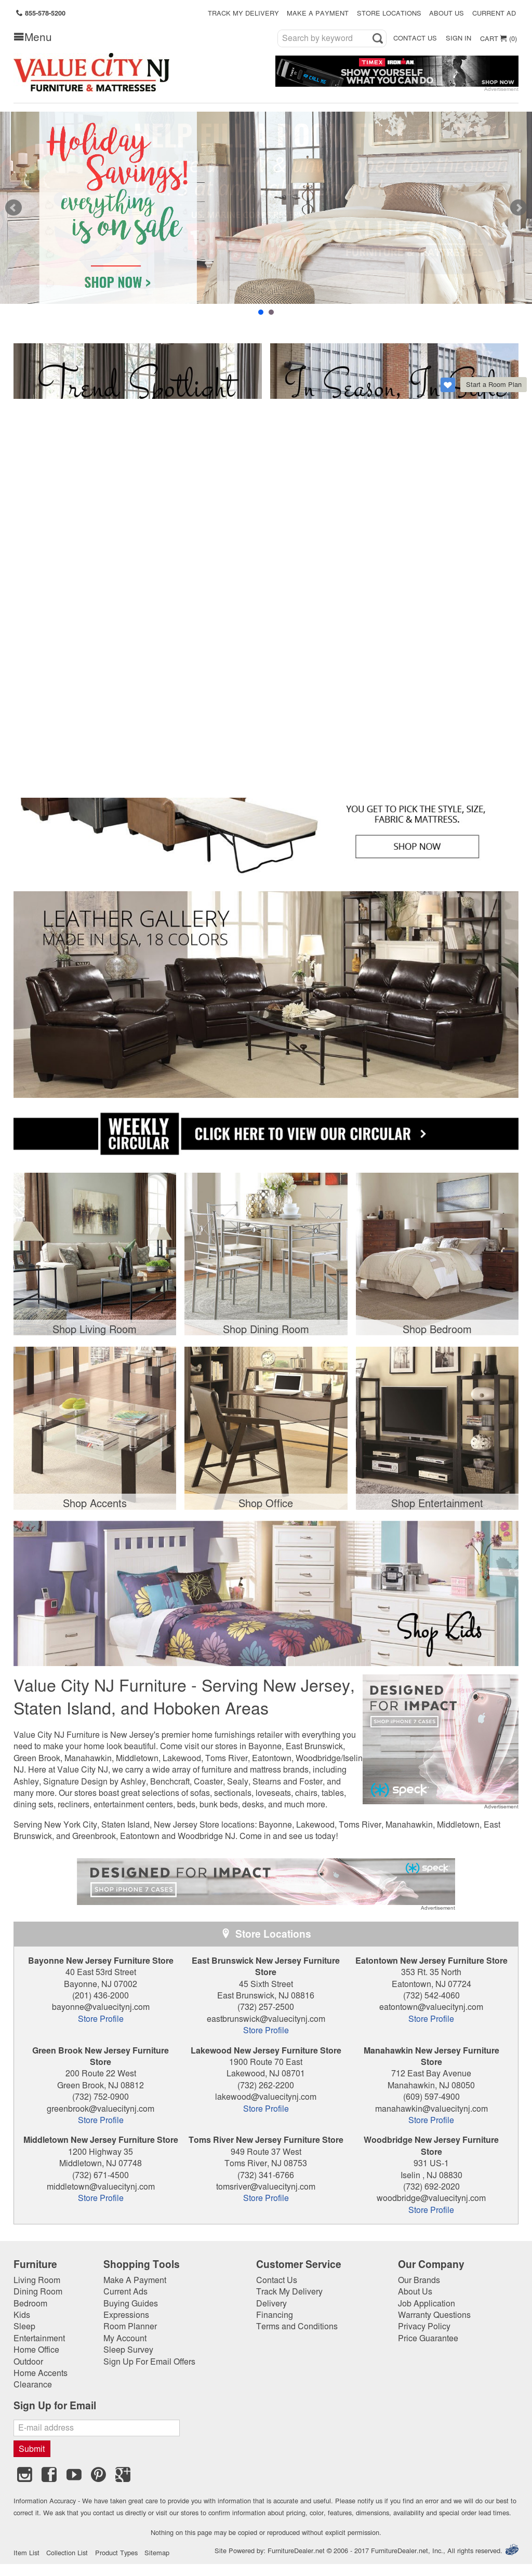 Value City Furniture Website History